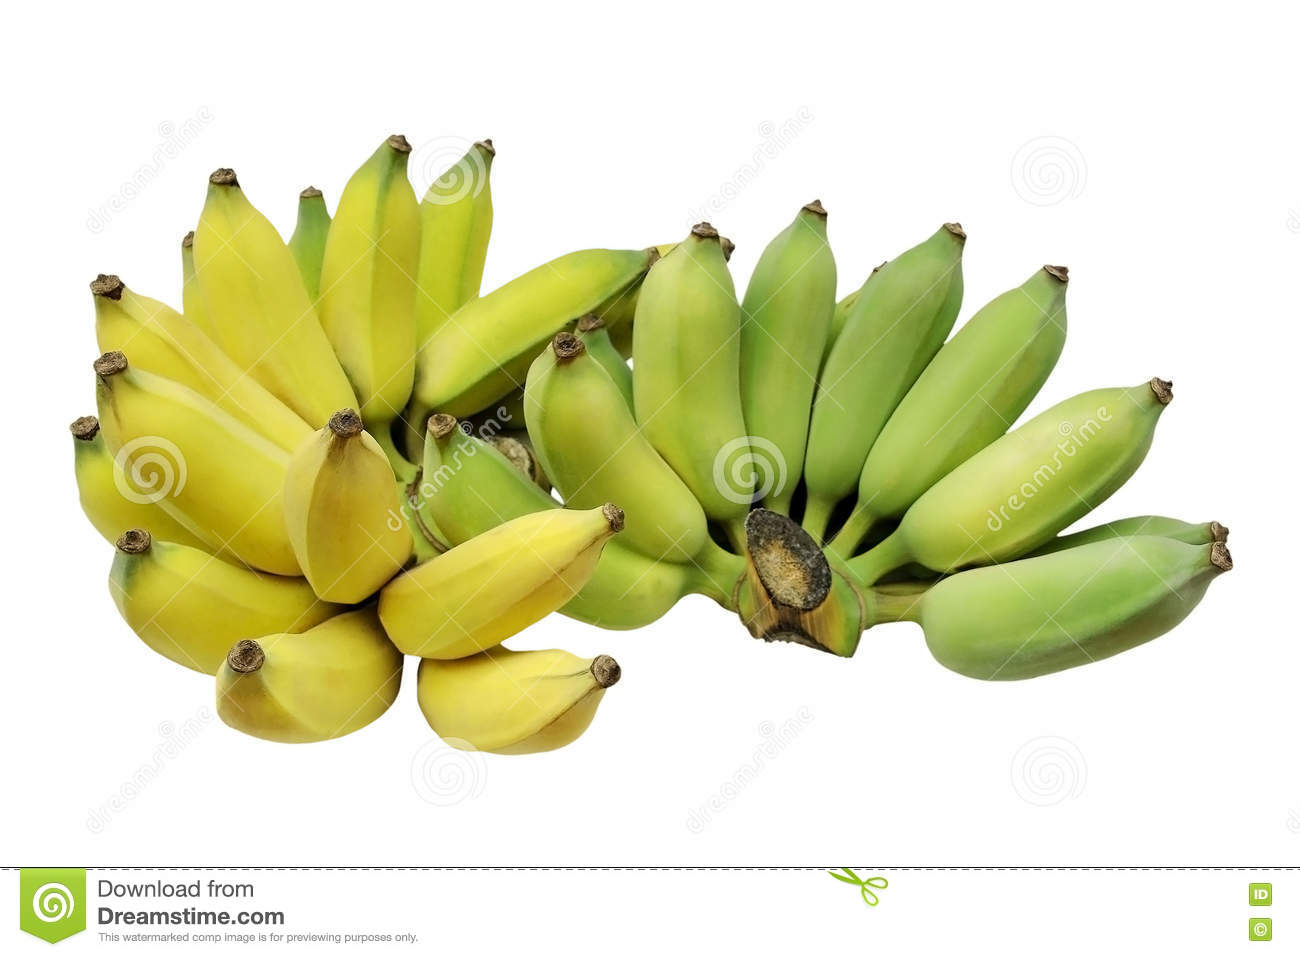 Cultivated banana or Thai banana isolated on white background